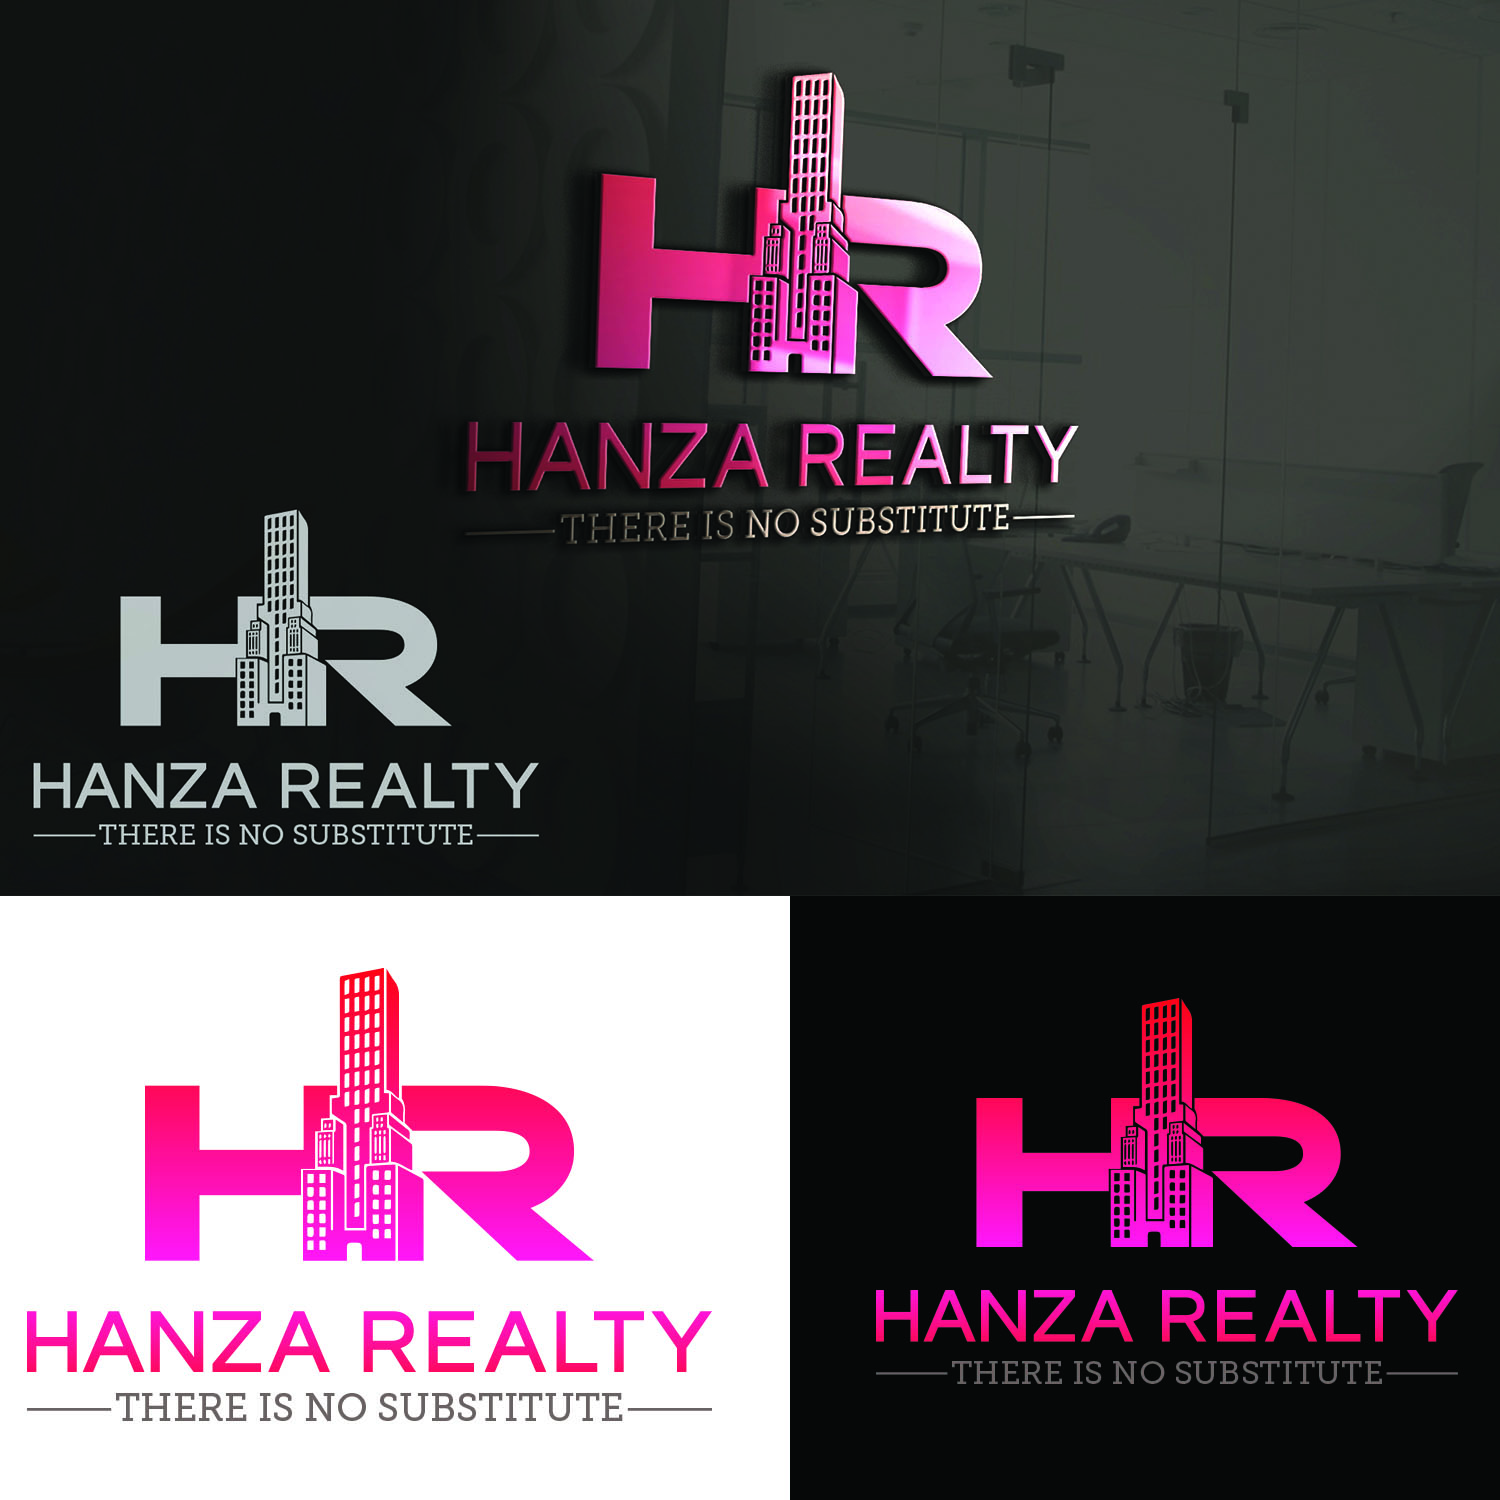 Logo Design by Umair ahmed Iqbal - Entry No. 319 in the Logo Design Contest Logo Design for Hanza Realty.